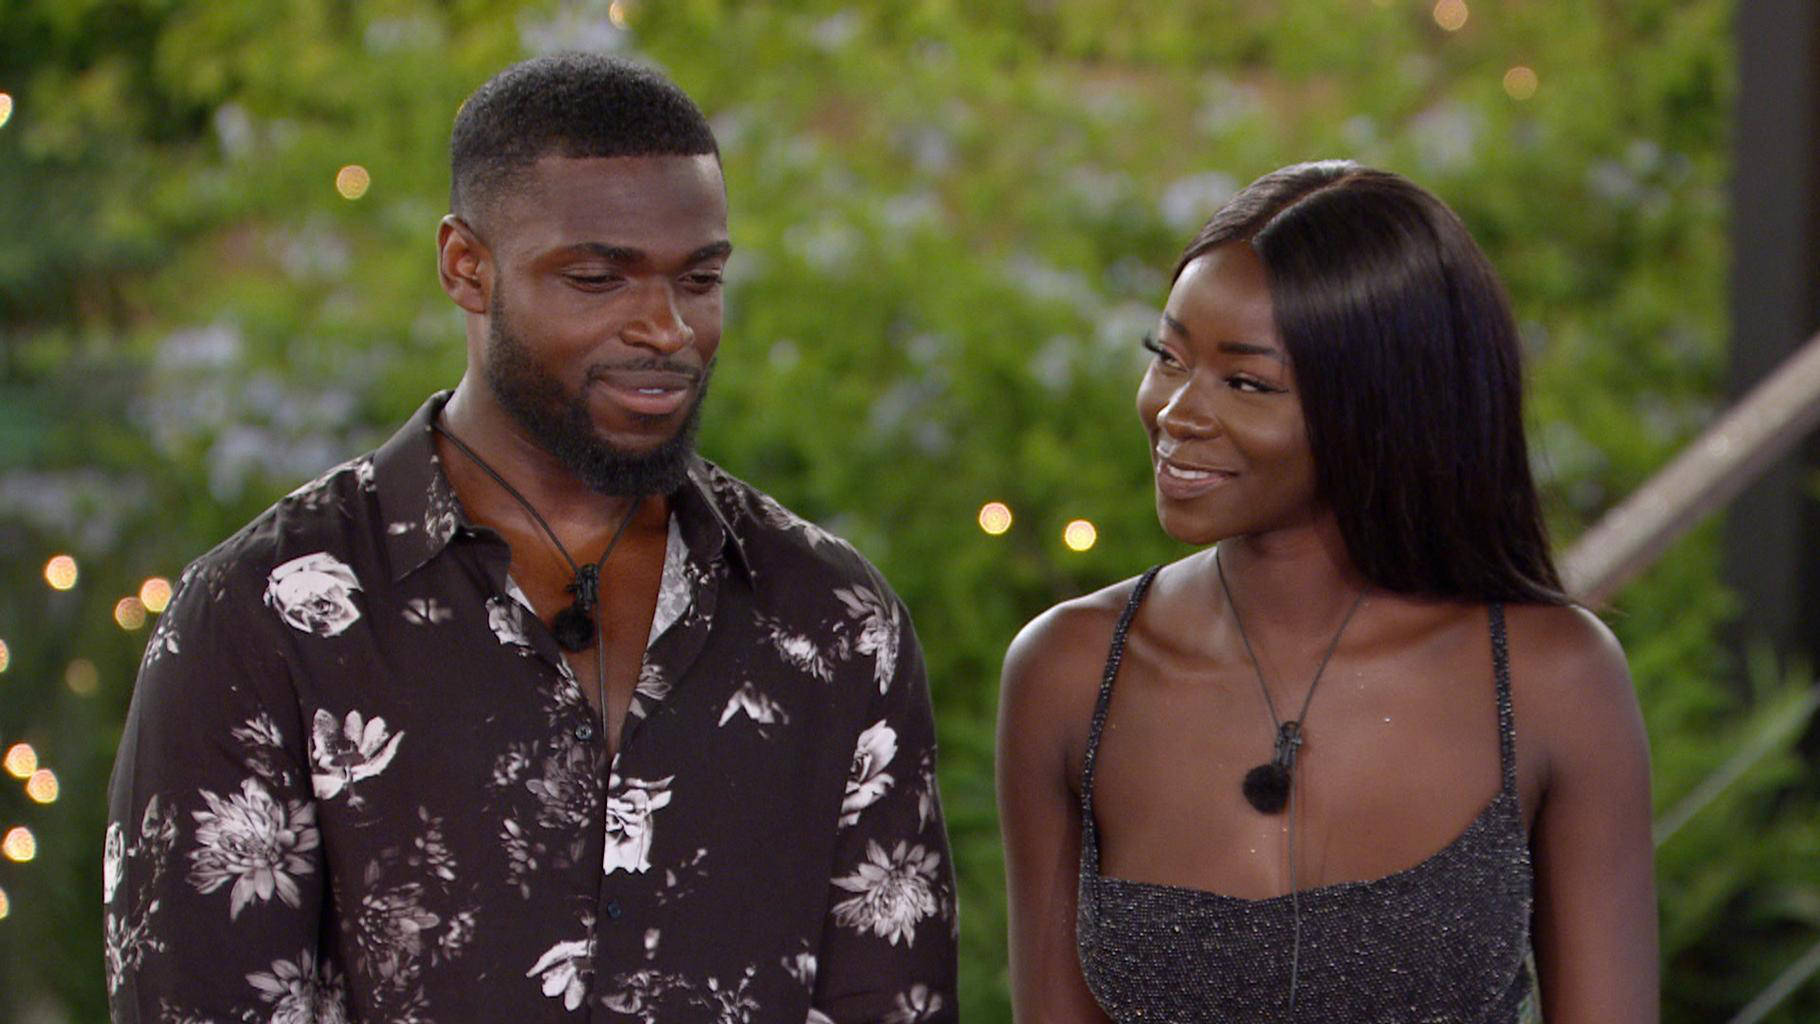 Love Island's Priscilla Anyabu And Mike Boateng Split After 15 Months  Together - Capital